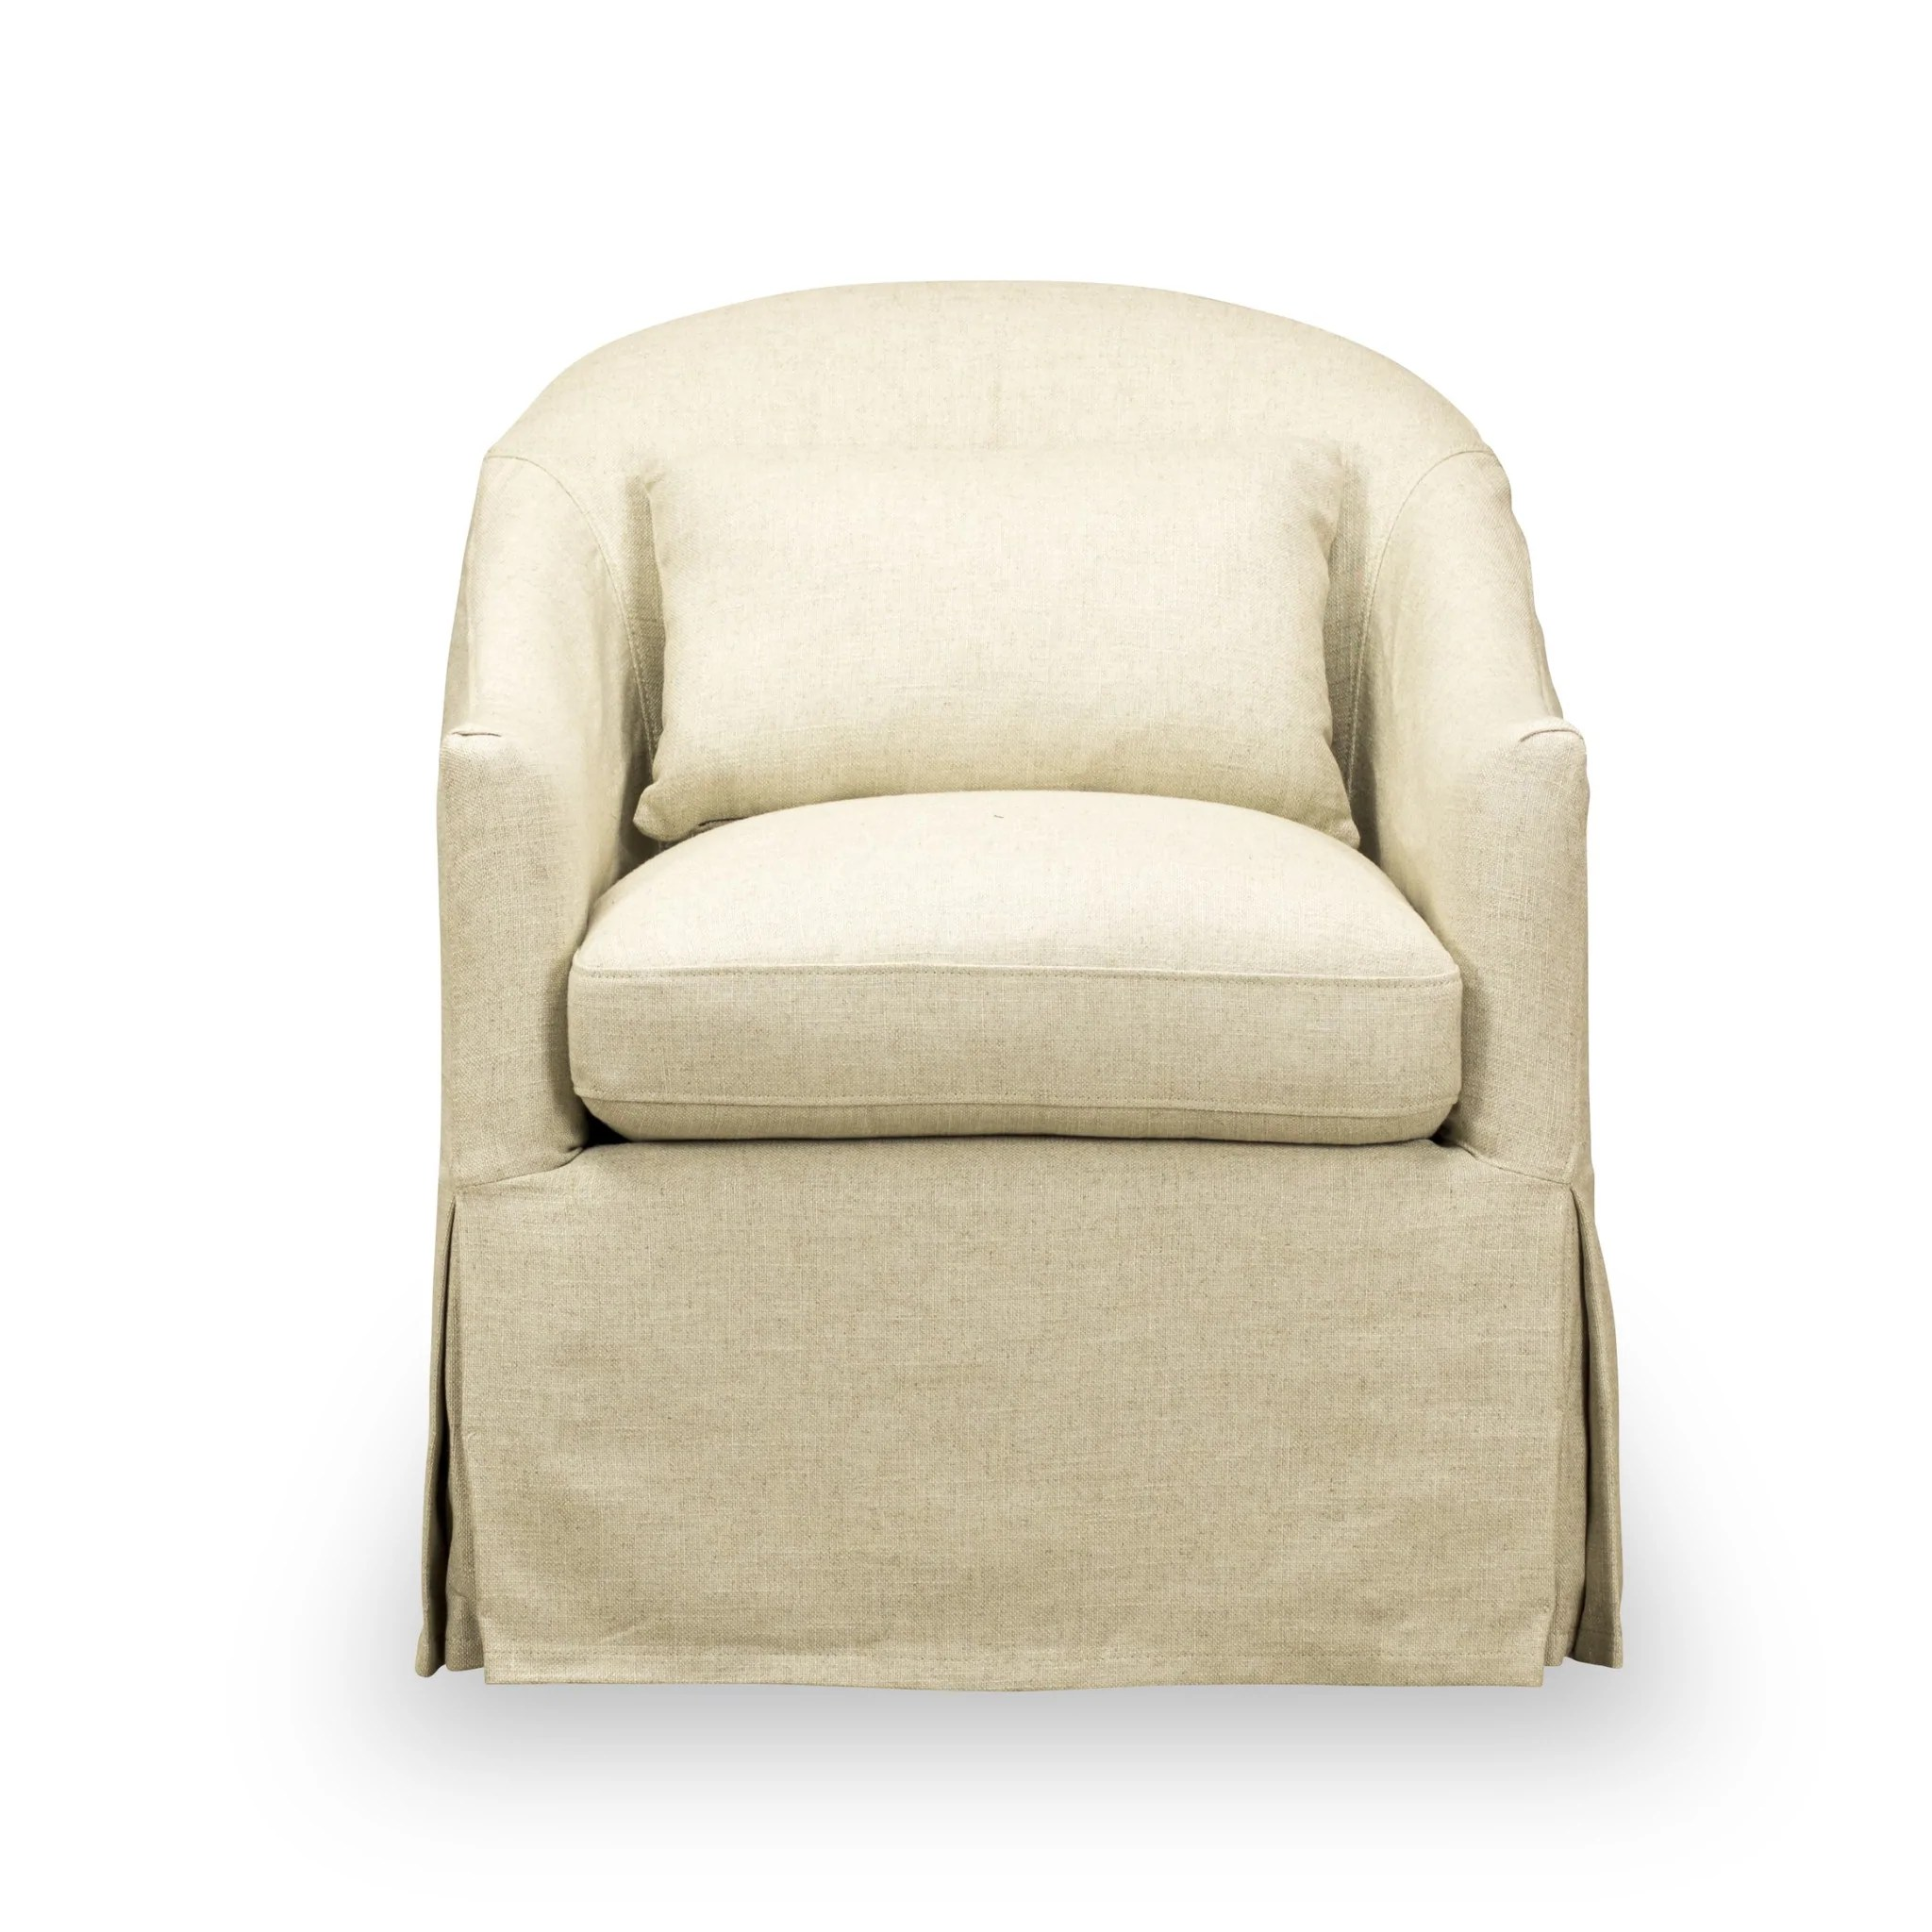 becky slipcover swivel chair in natural ecru